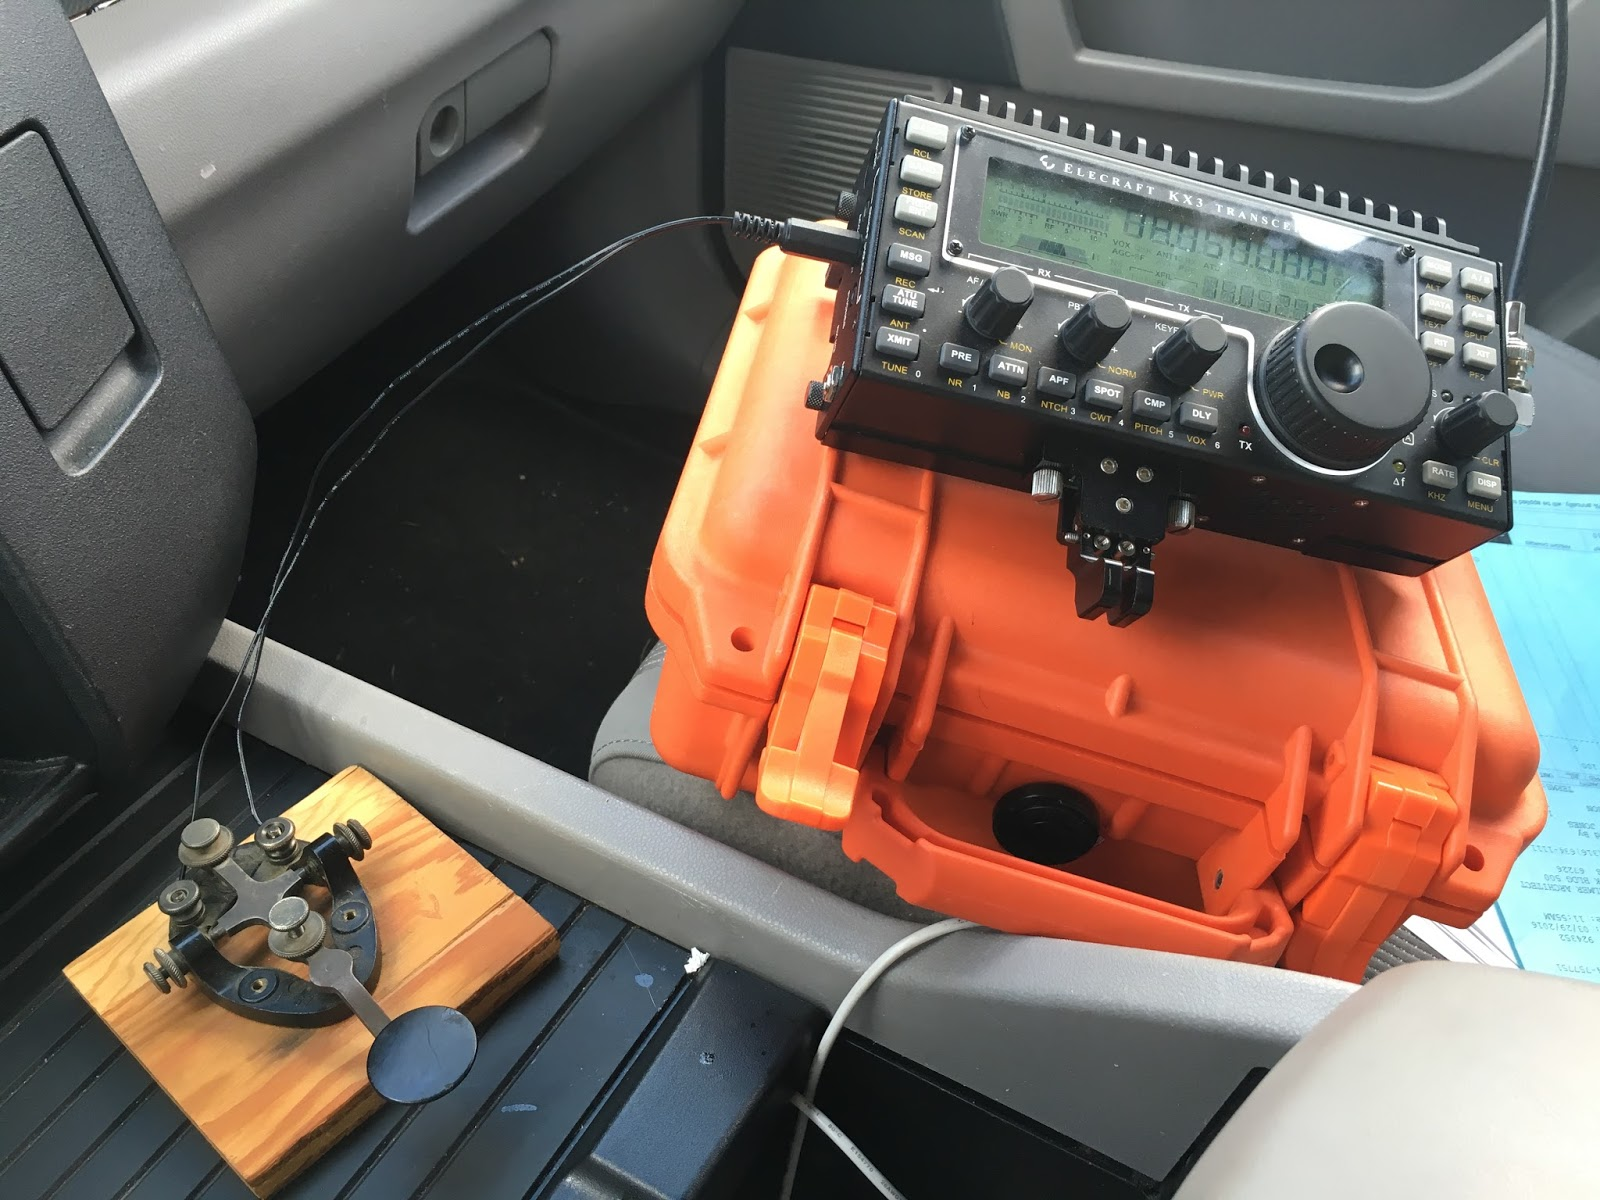 N0HYD - QRP & Portable Adventures!: Portable Ops 18/45: 20 Meters